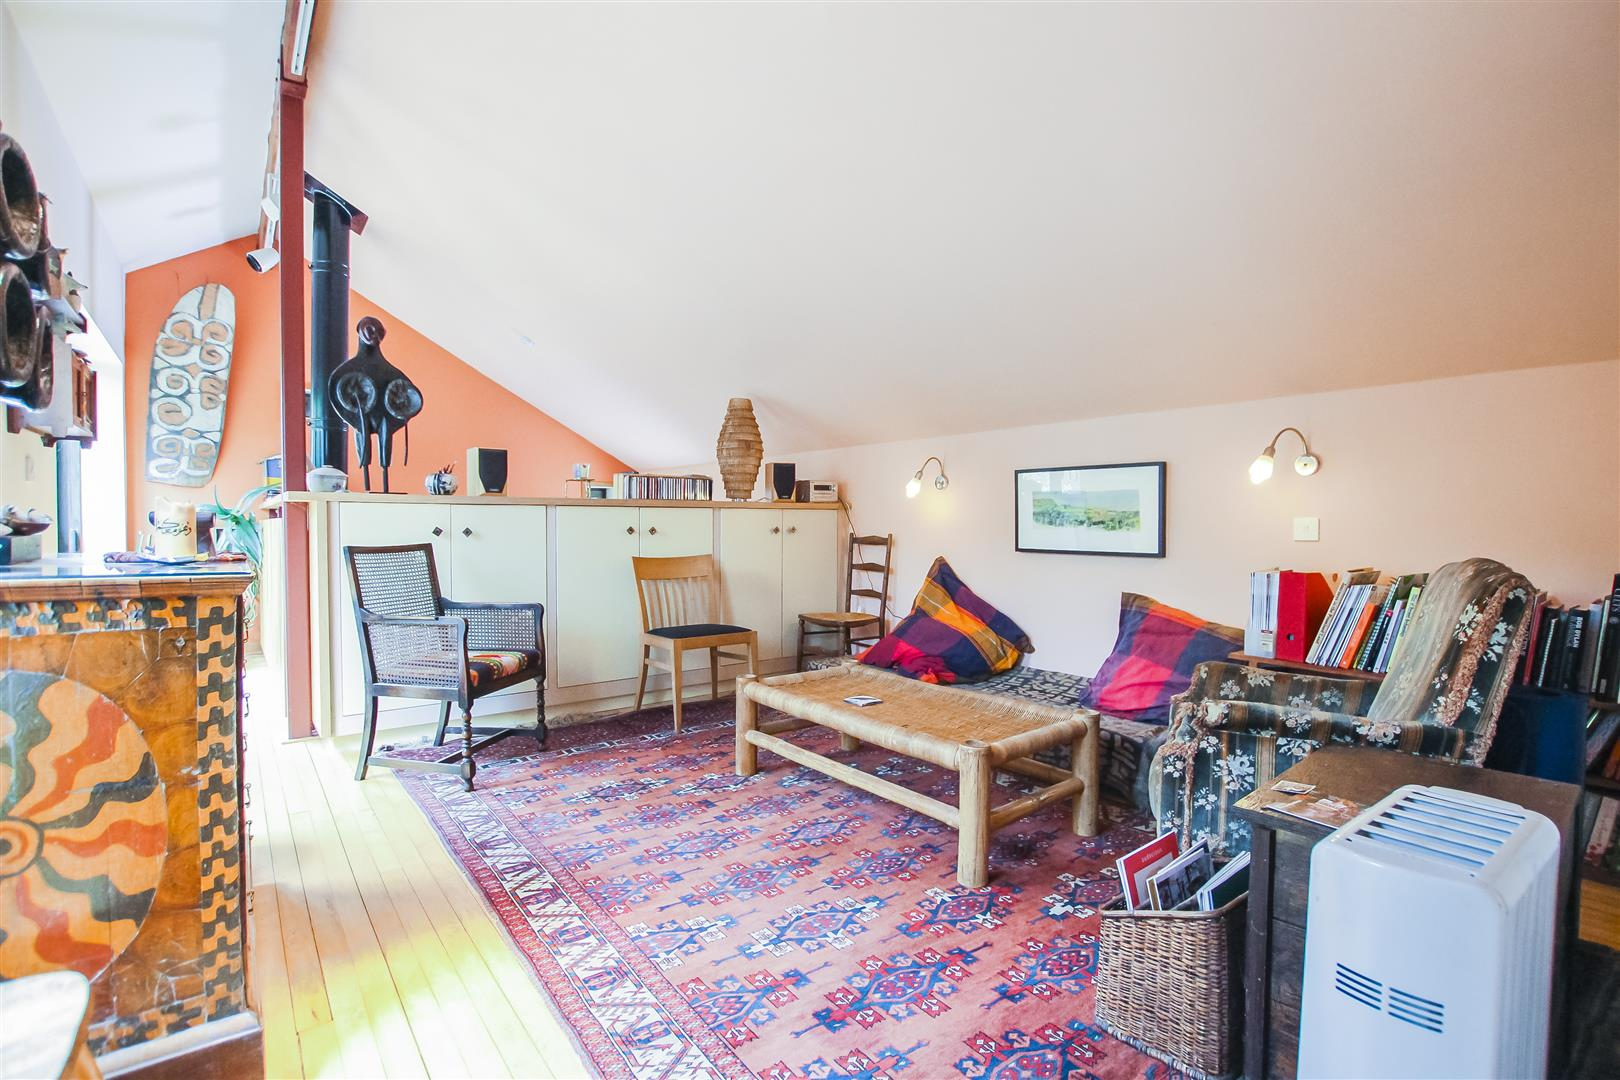 5 Bedroom Farmhouse For Sale - Image 62